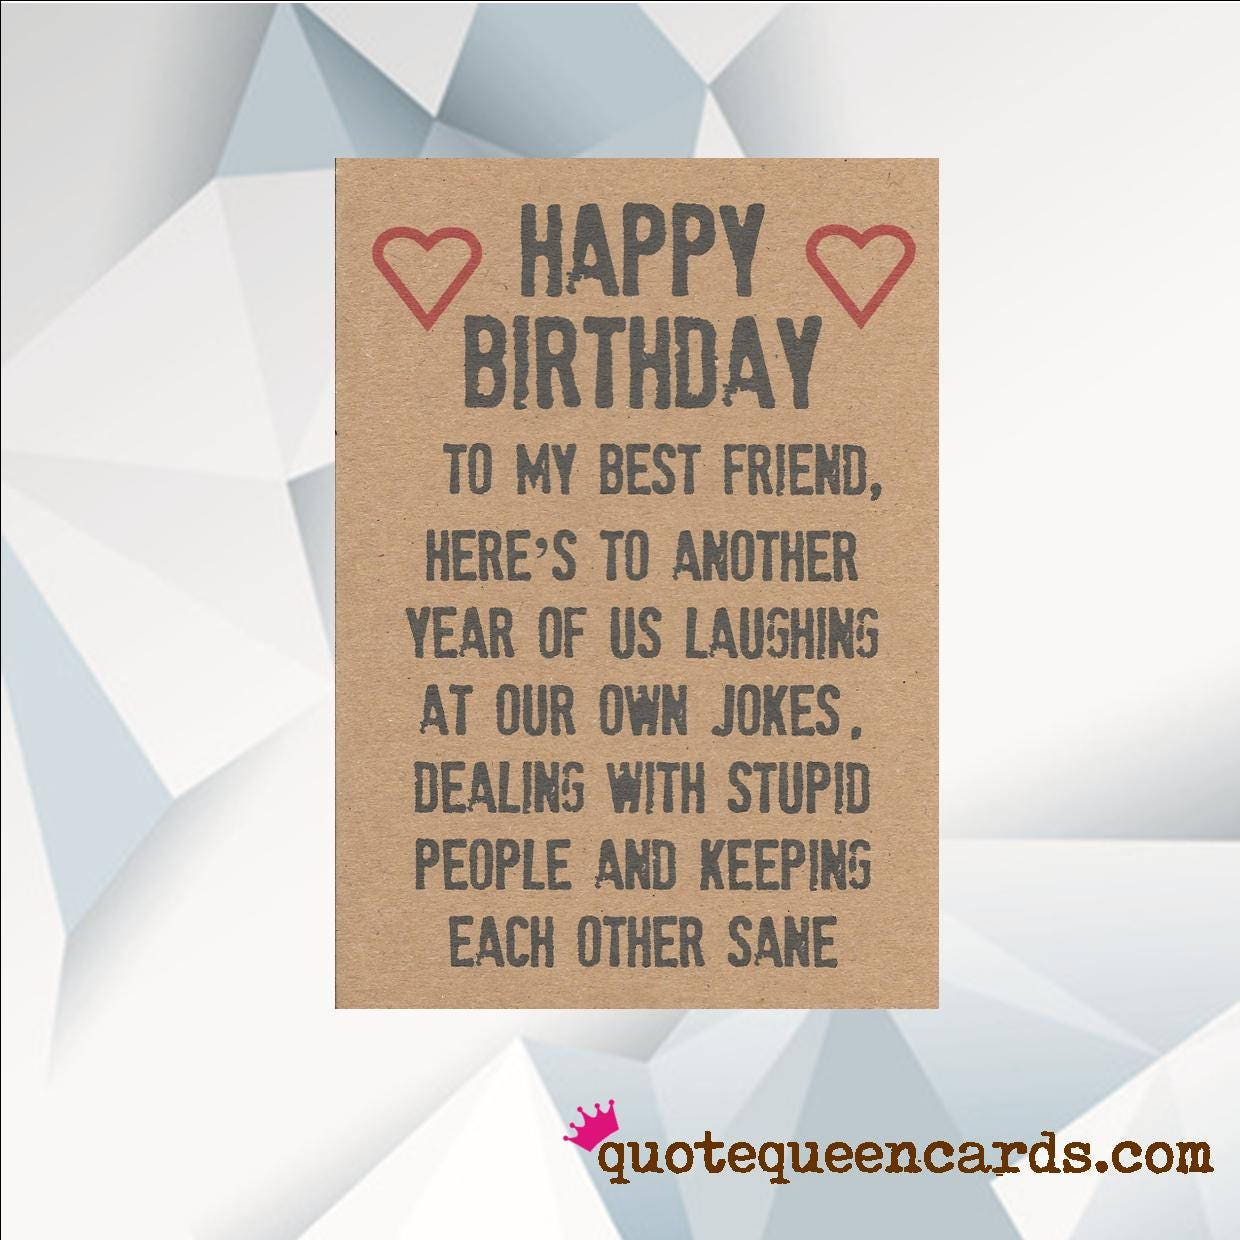 Happy birthday best friend funny card for